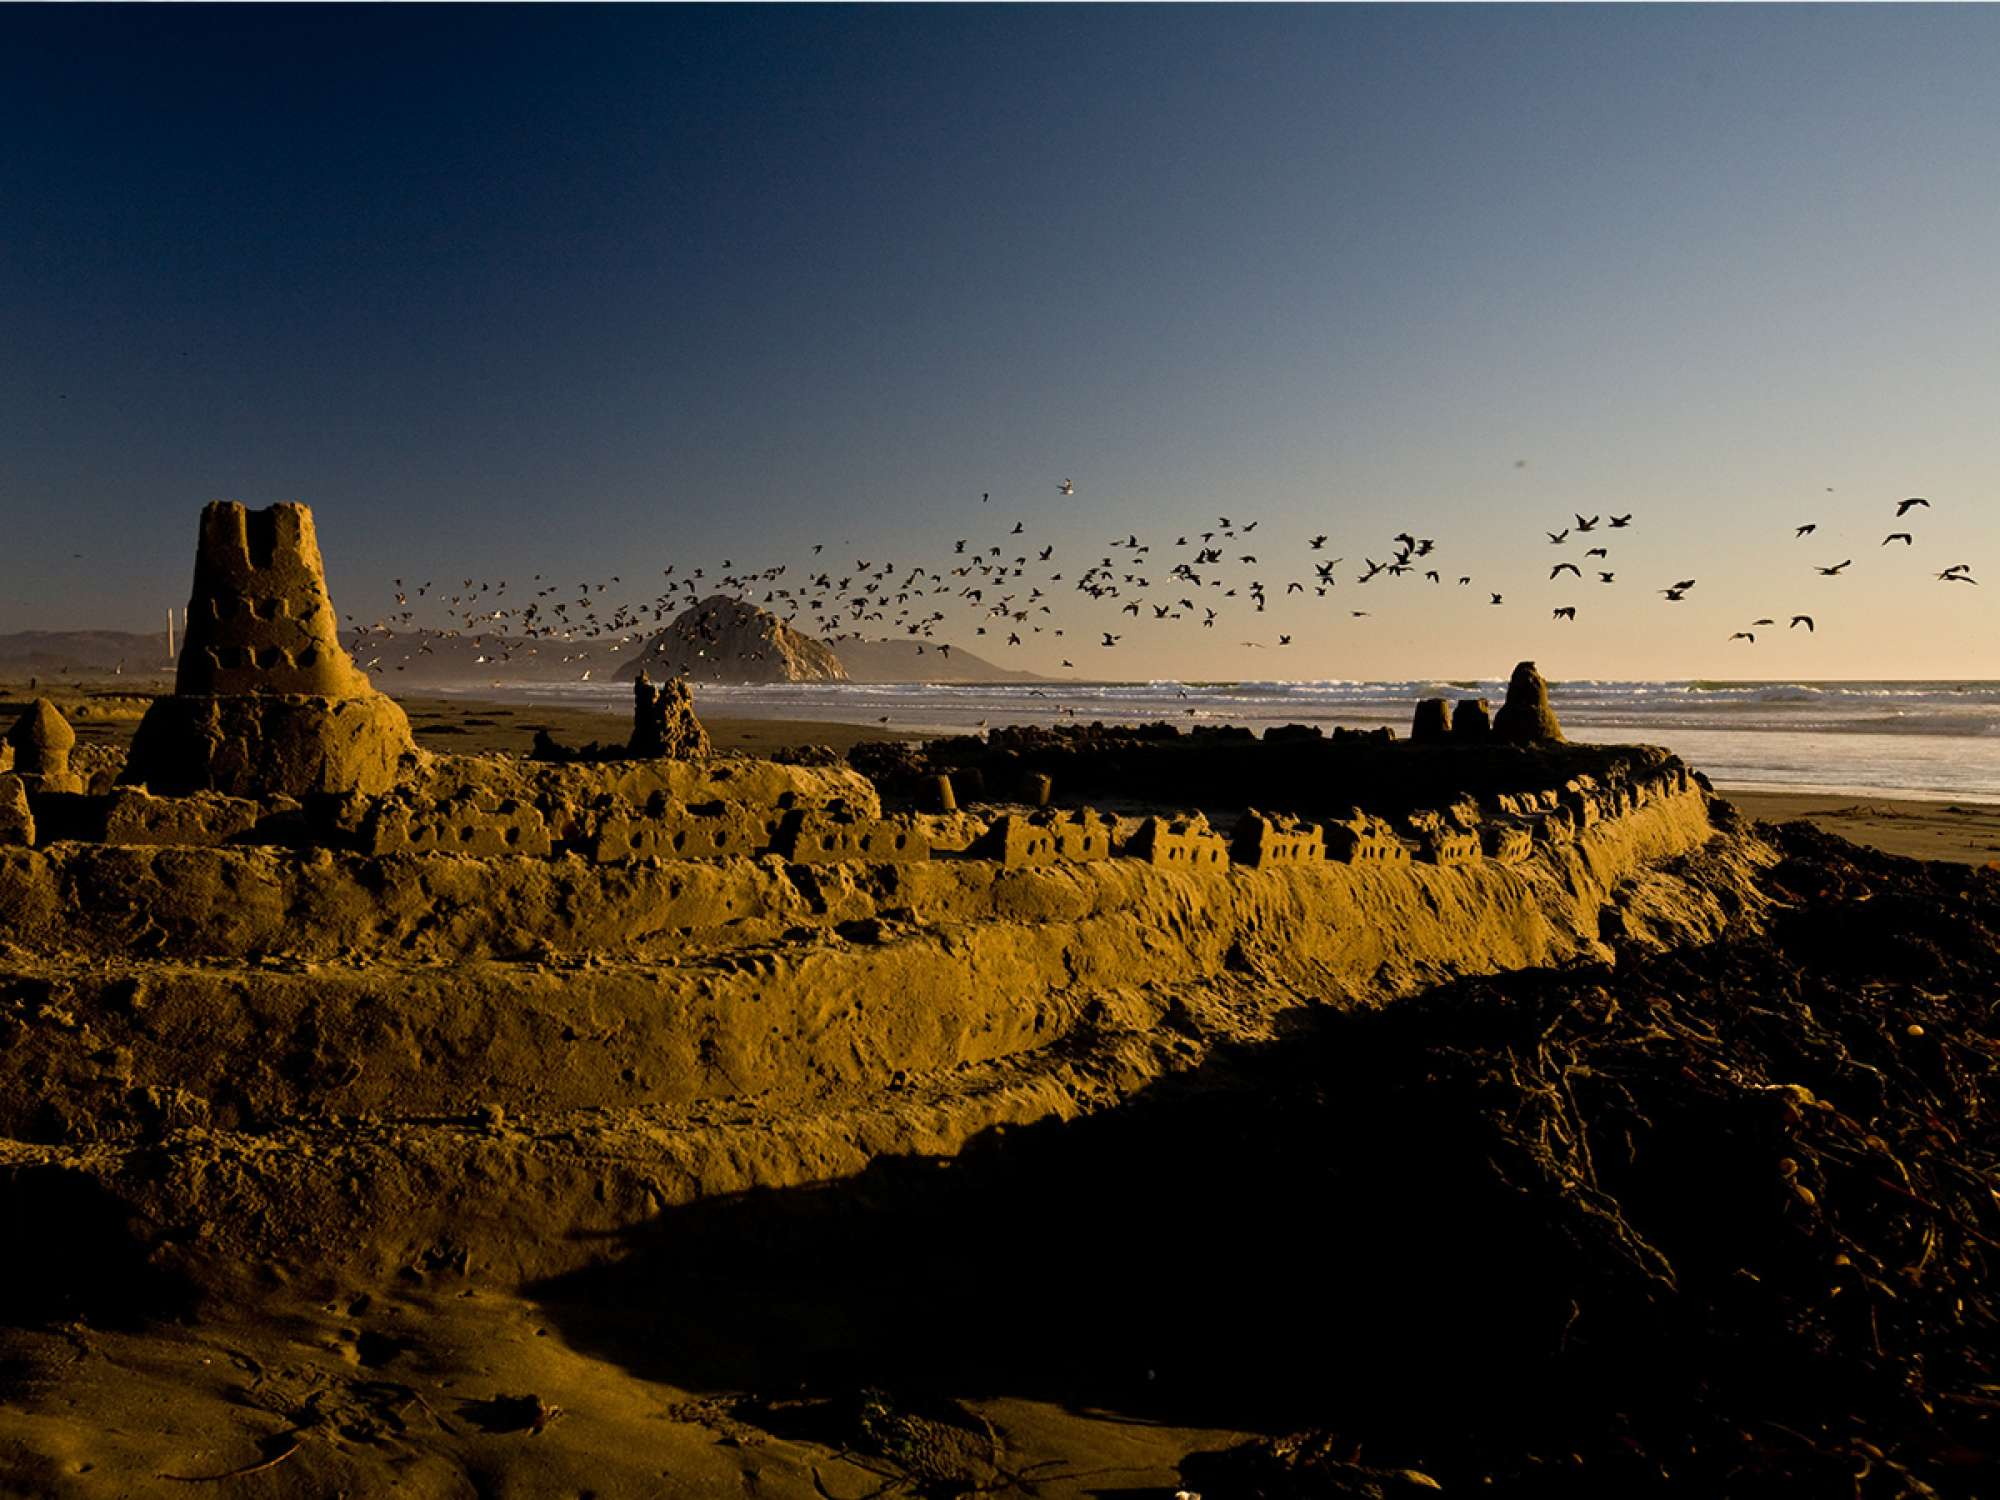 Sunset picture of seagulls flying above sand castle